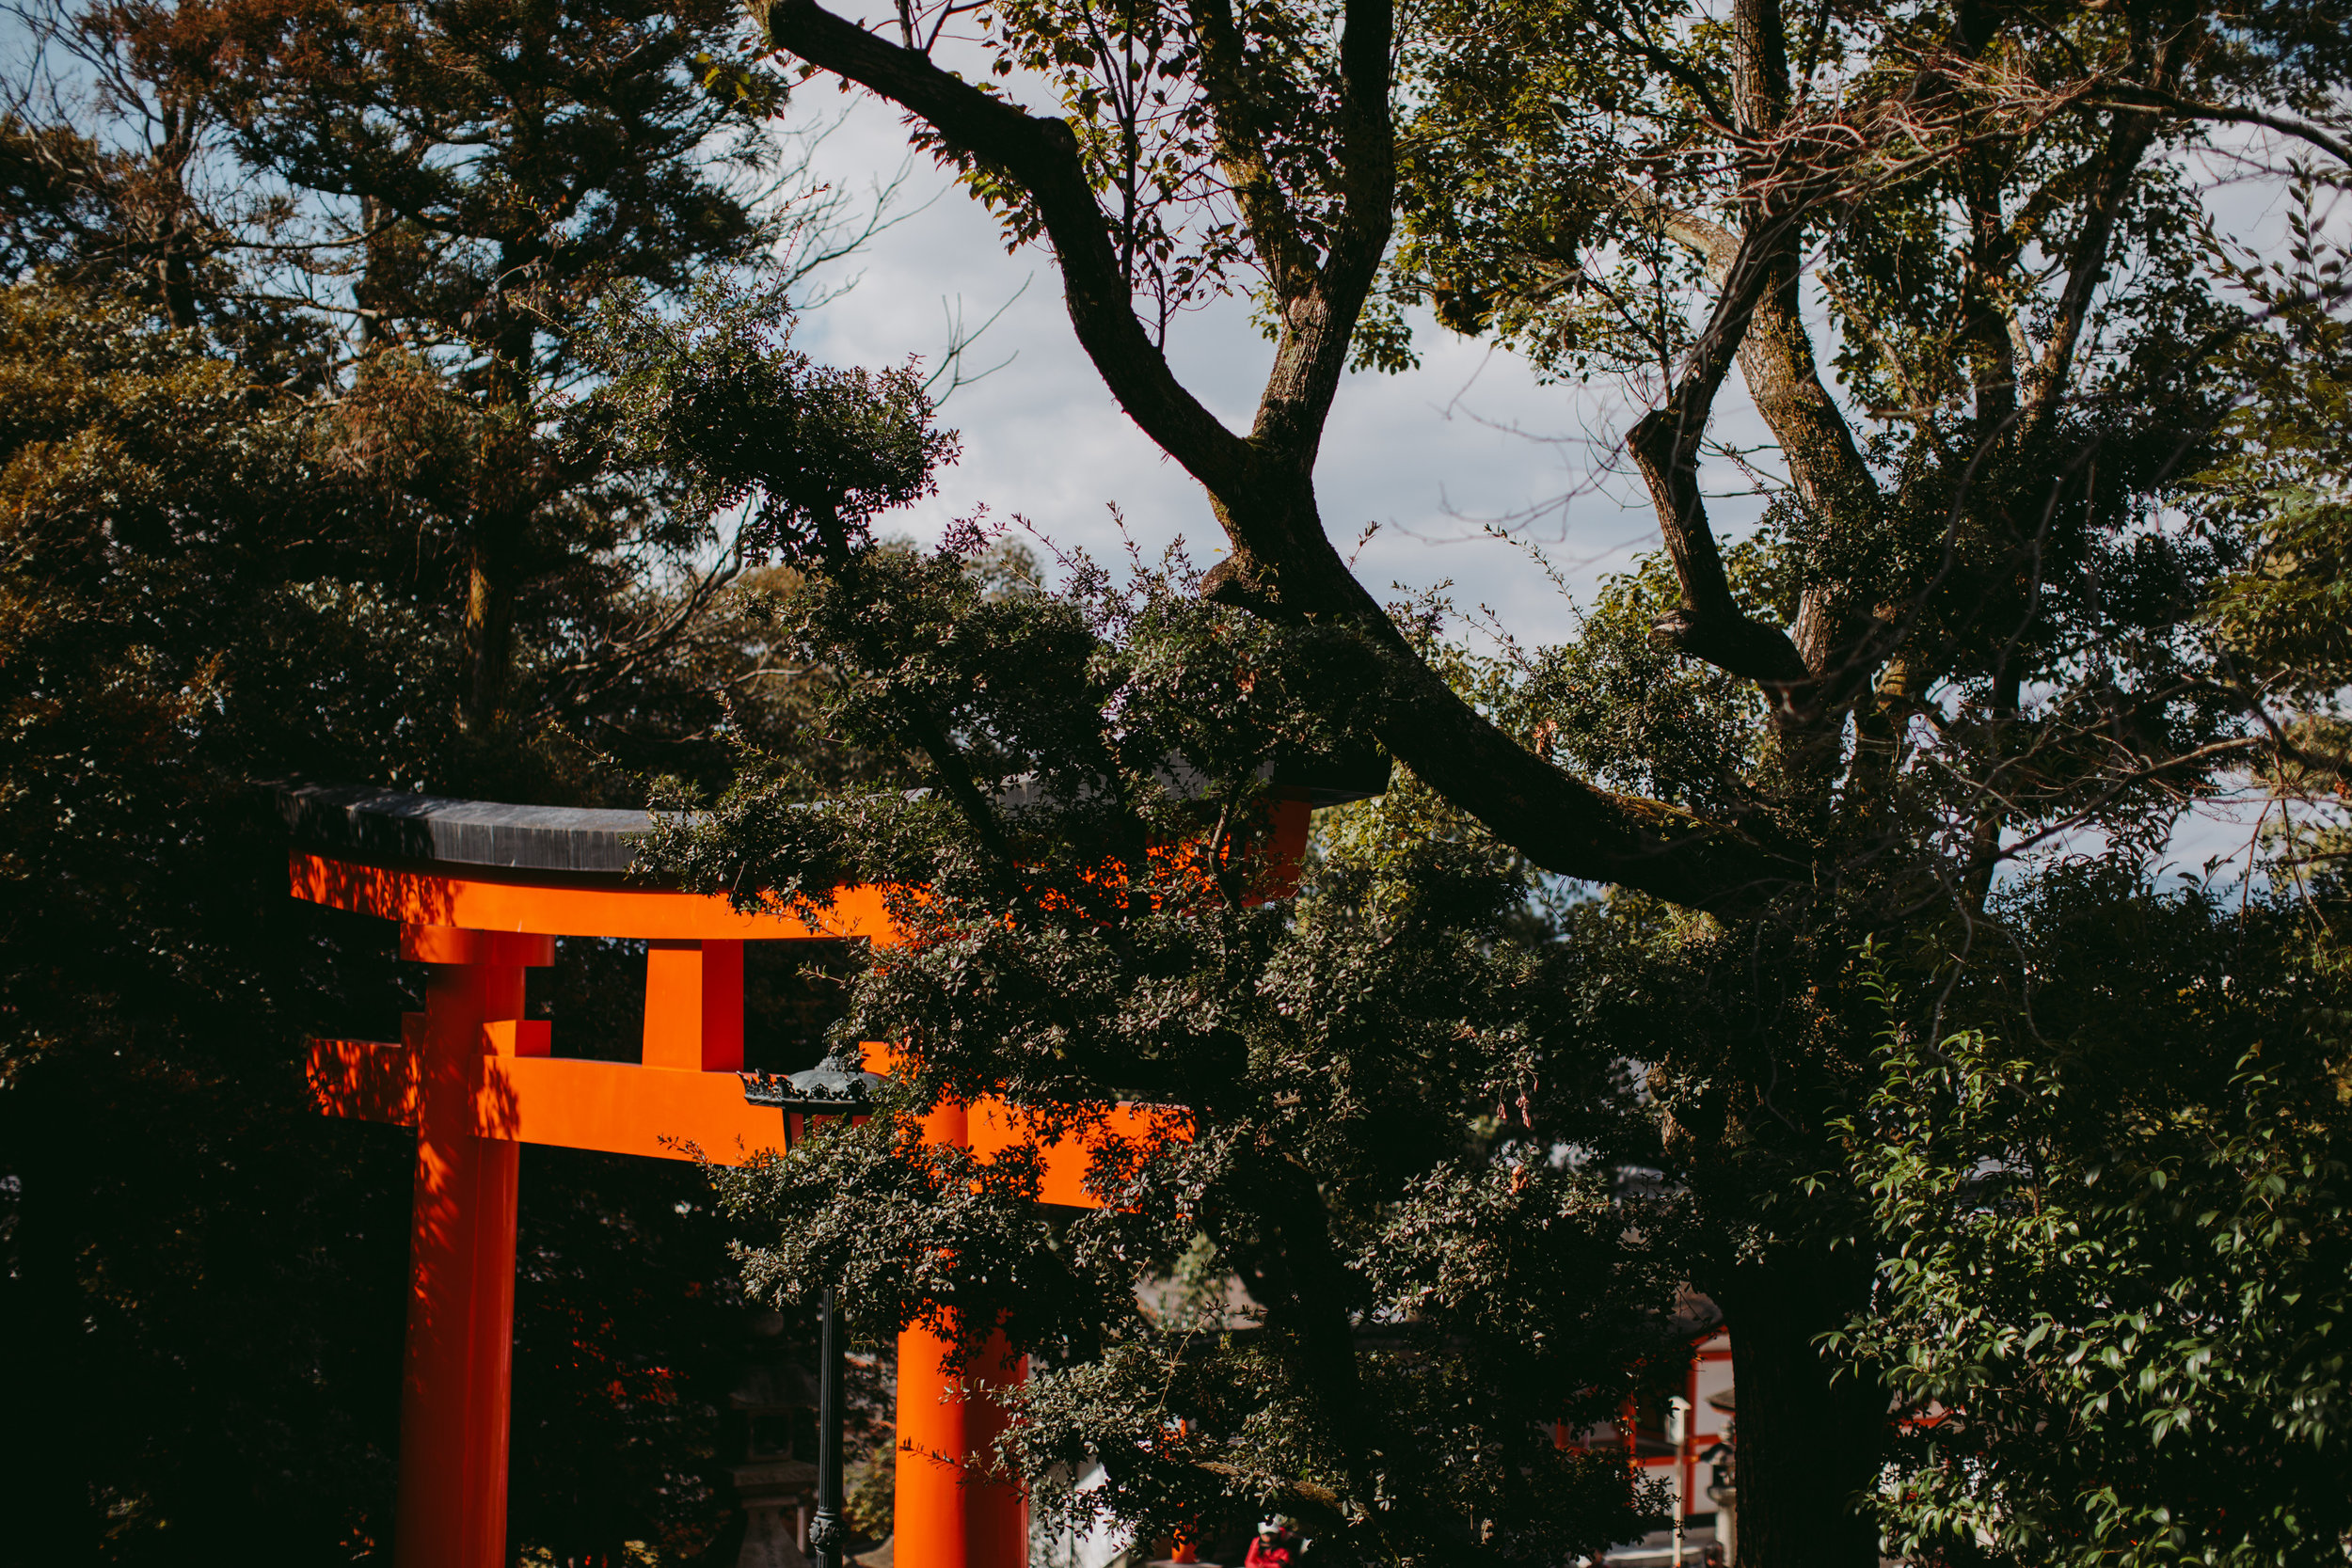 MikeSeehagel-commercial-lifestyle-travel-photography-Japan-54.jpg